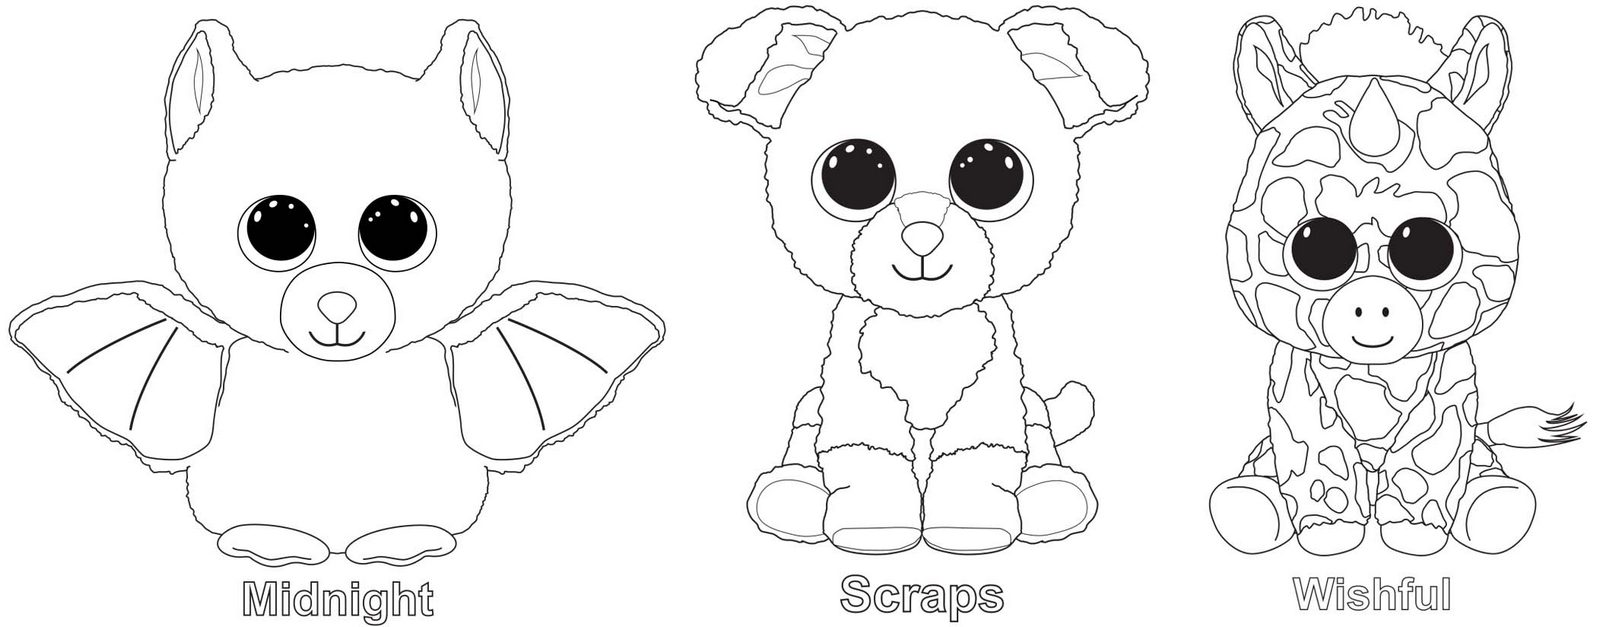 Beanie Boo Coloring Pages Featuring Favorite the Stuffed Animals and